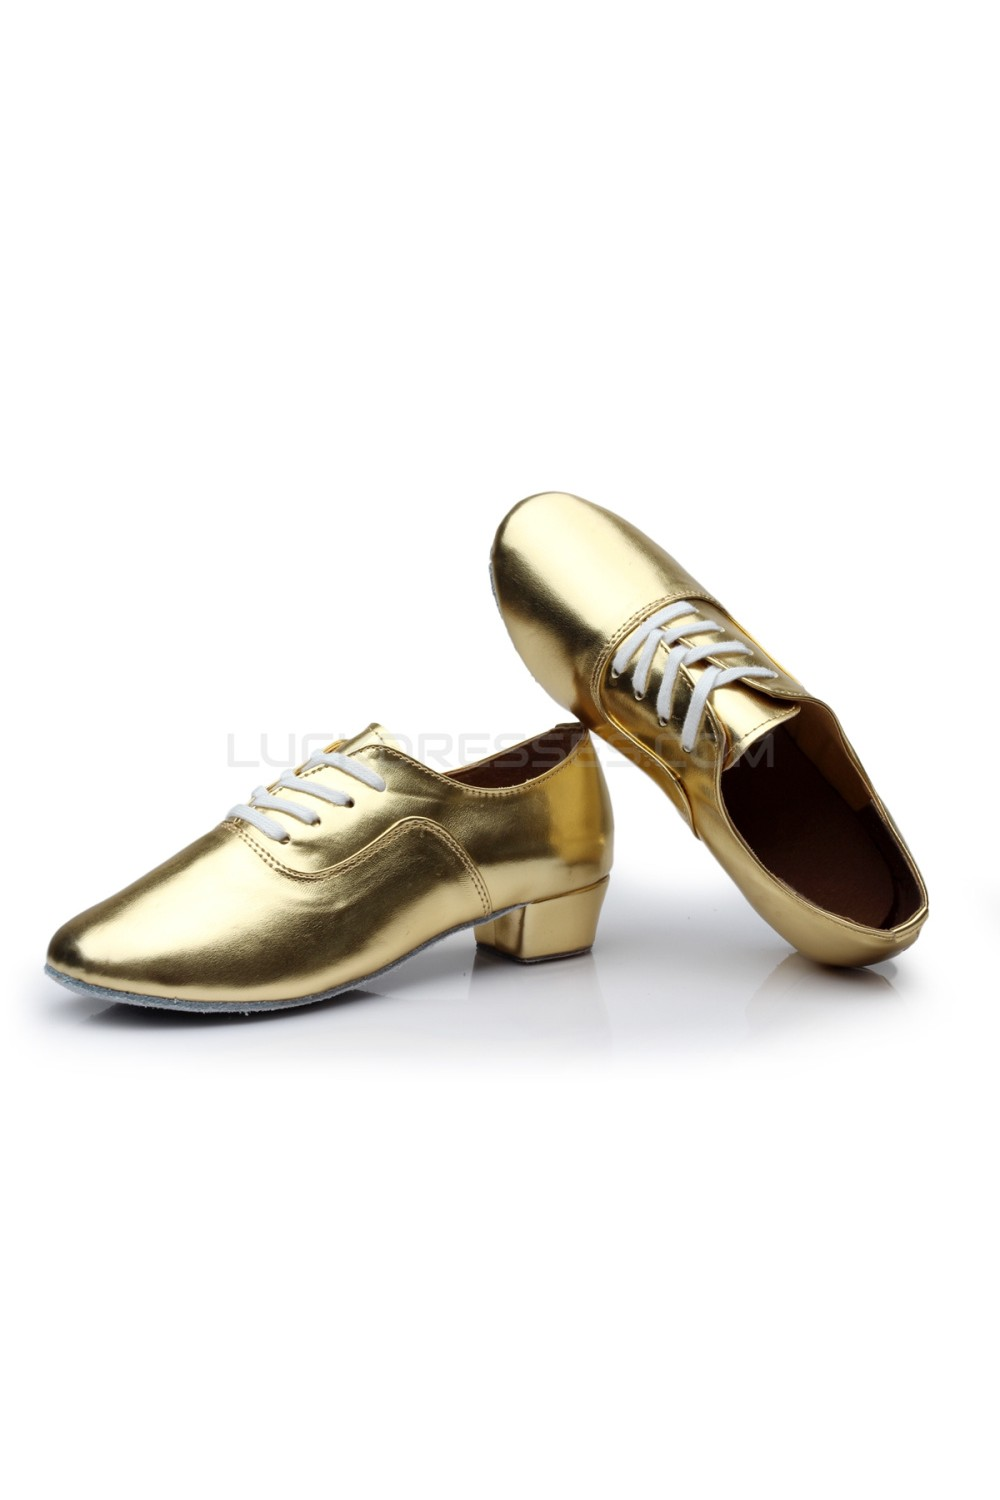 2e80ccf6e Men's Kids' Gold Leatherette Modern Ballroom Latin Dance Shoes Dance  Sneakers Flat Heel D603002